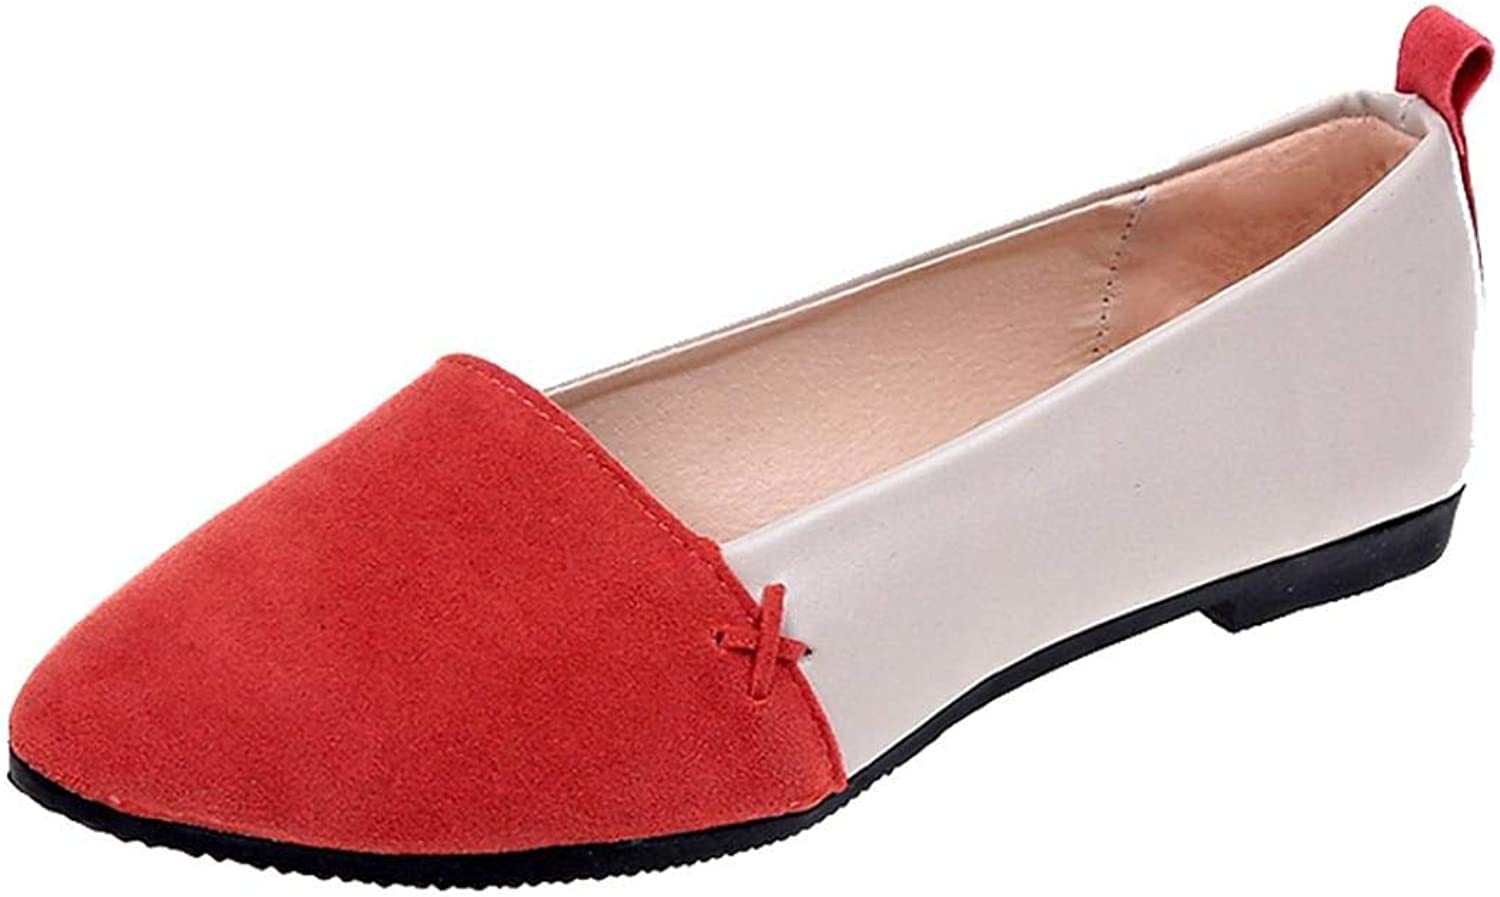 JaHGDU Mixed color Women shoes Flat with Shallow Mouth Suede Pointed Toe Single shoes Leisure Fashion Elegant Soft Wild Tight Super Quality for Womens